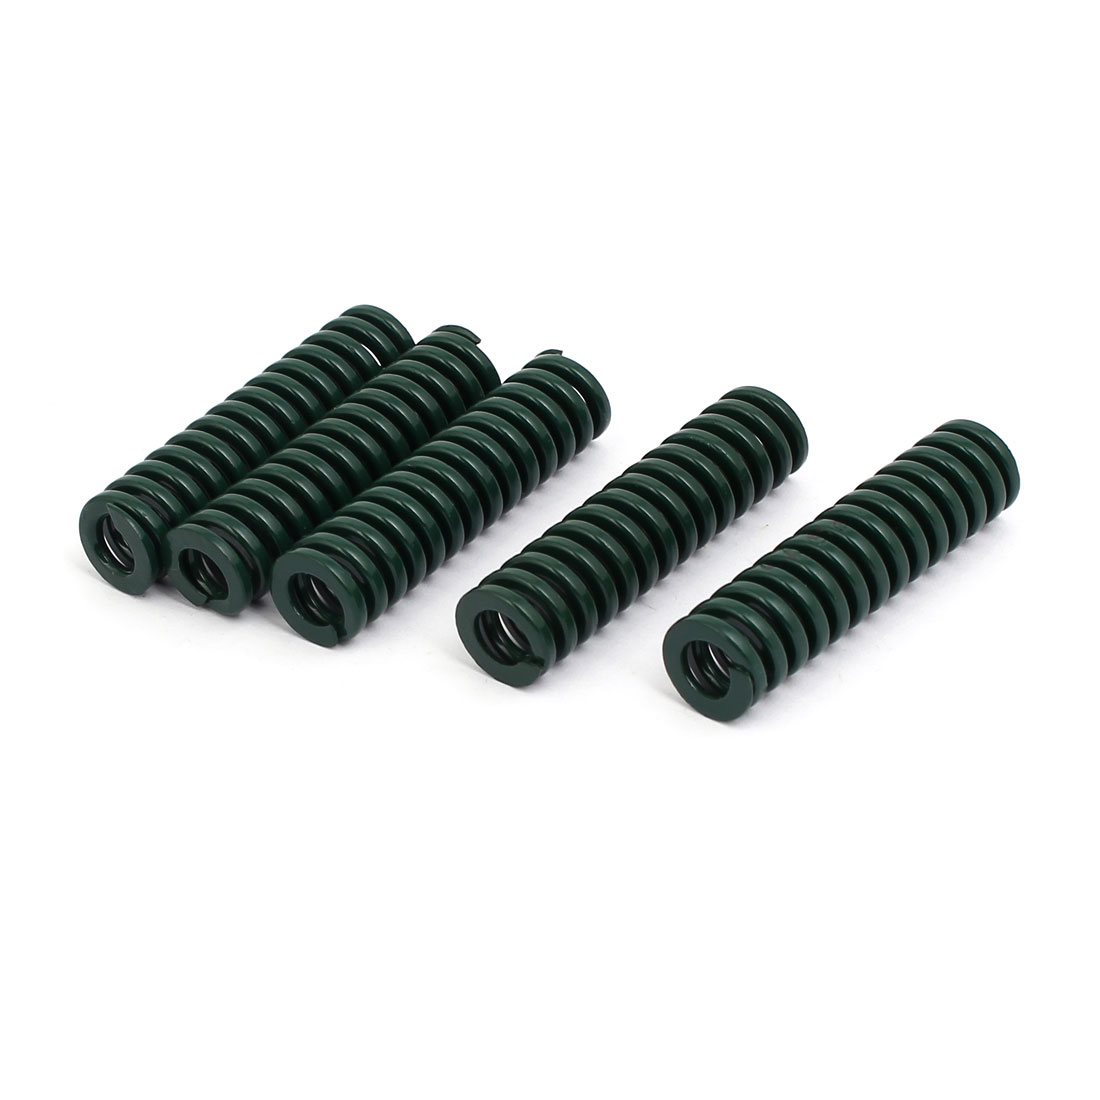 12mm OD 45mm Free Length Heavy Load Compression Mould Die Spring Green 5pcs